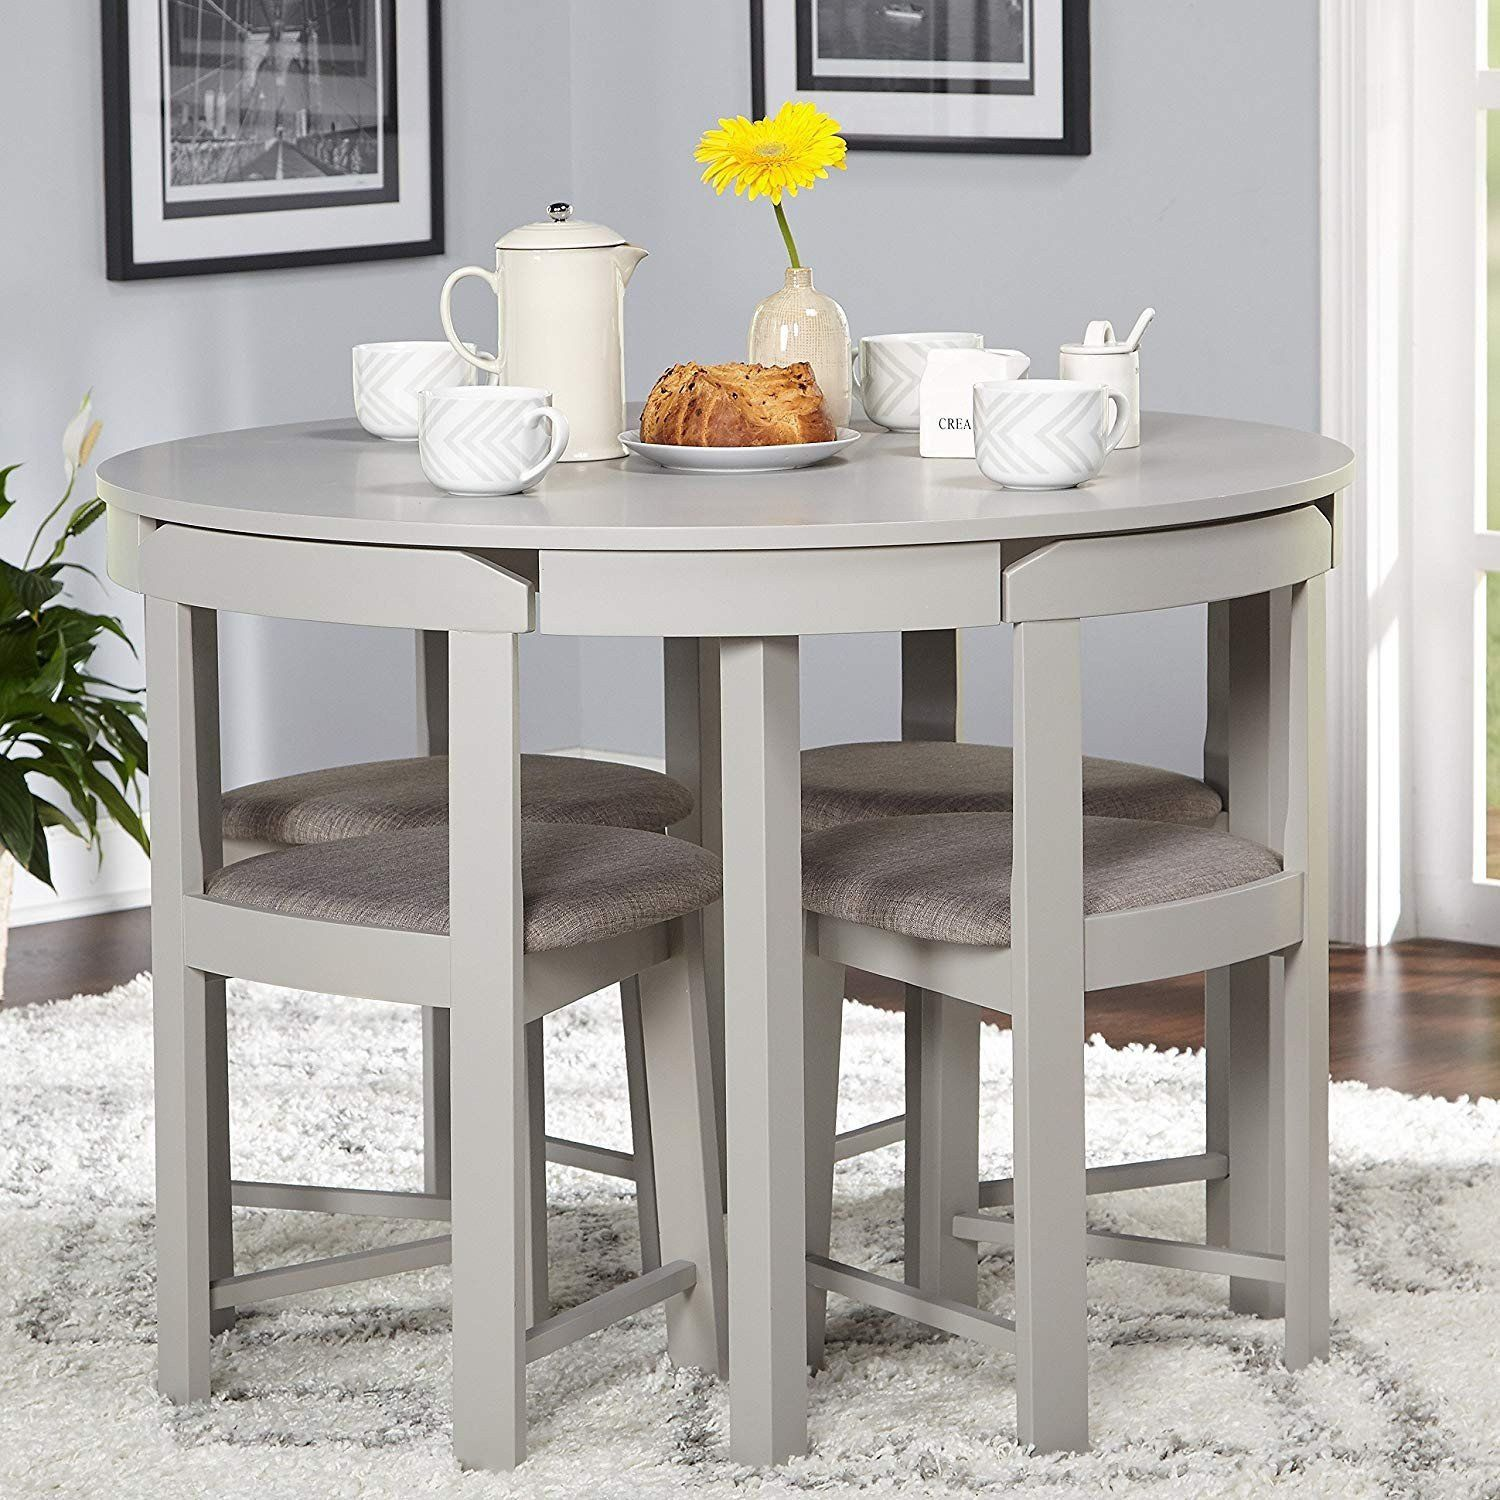 30 Small Dining Room Sets For Small Spaces Perabot Rumah Meja